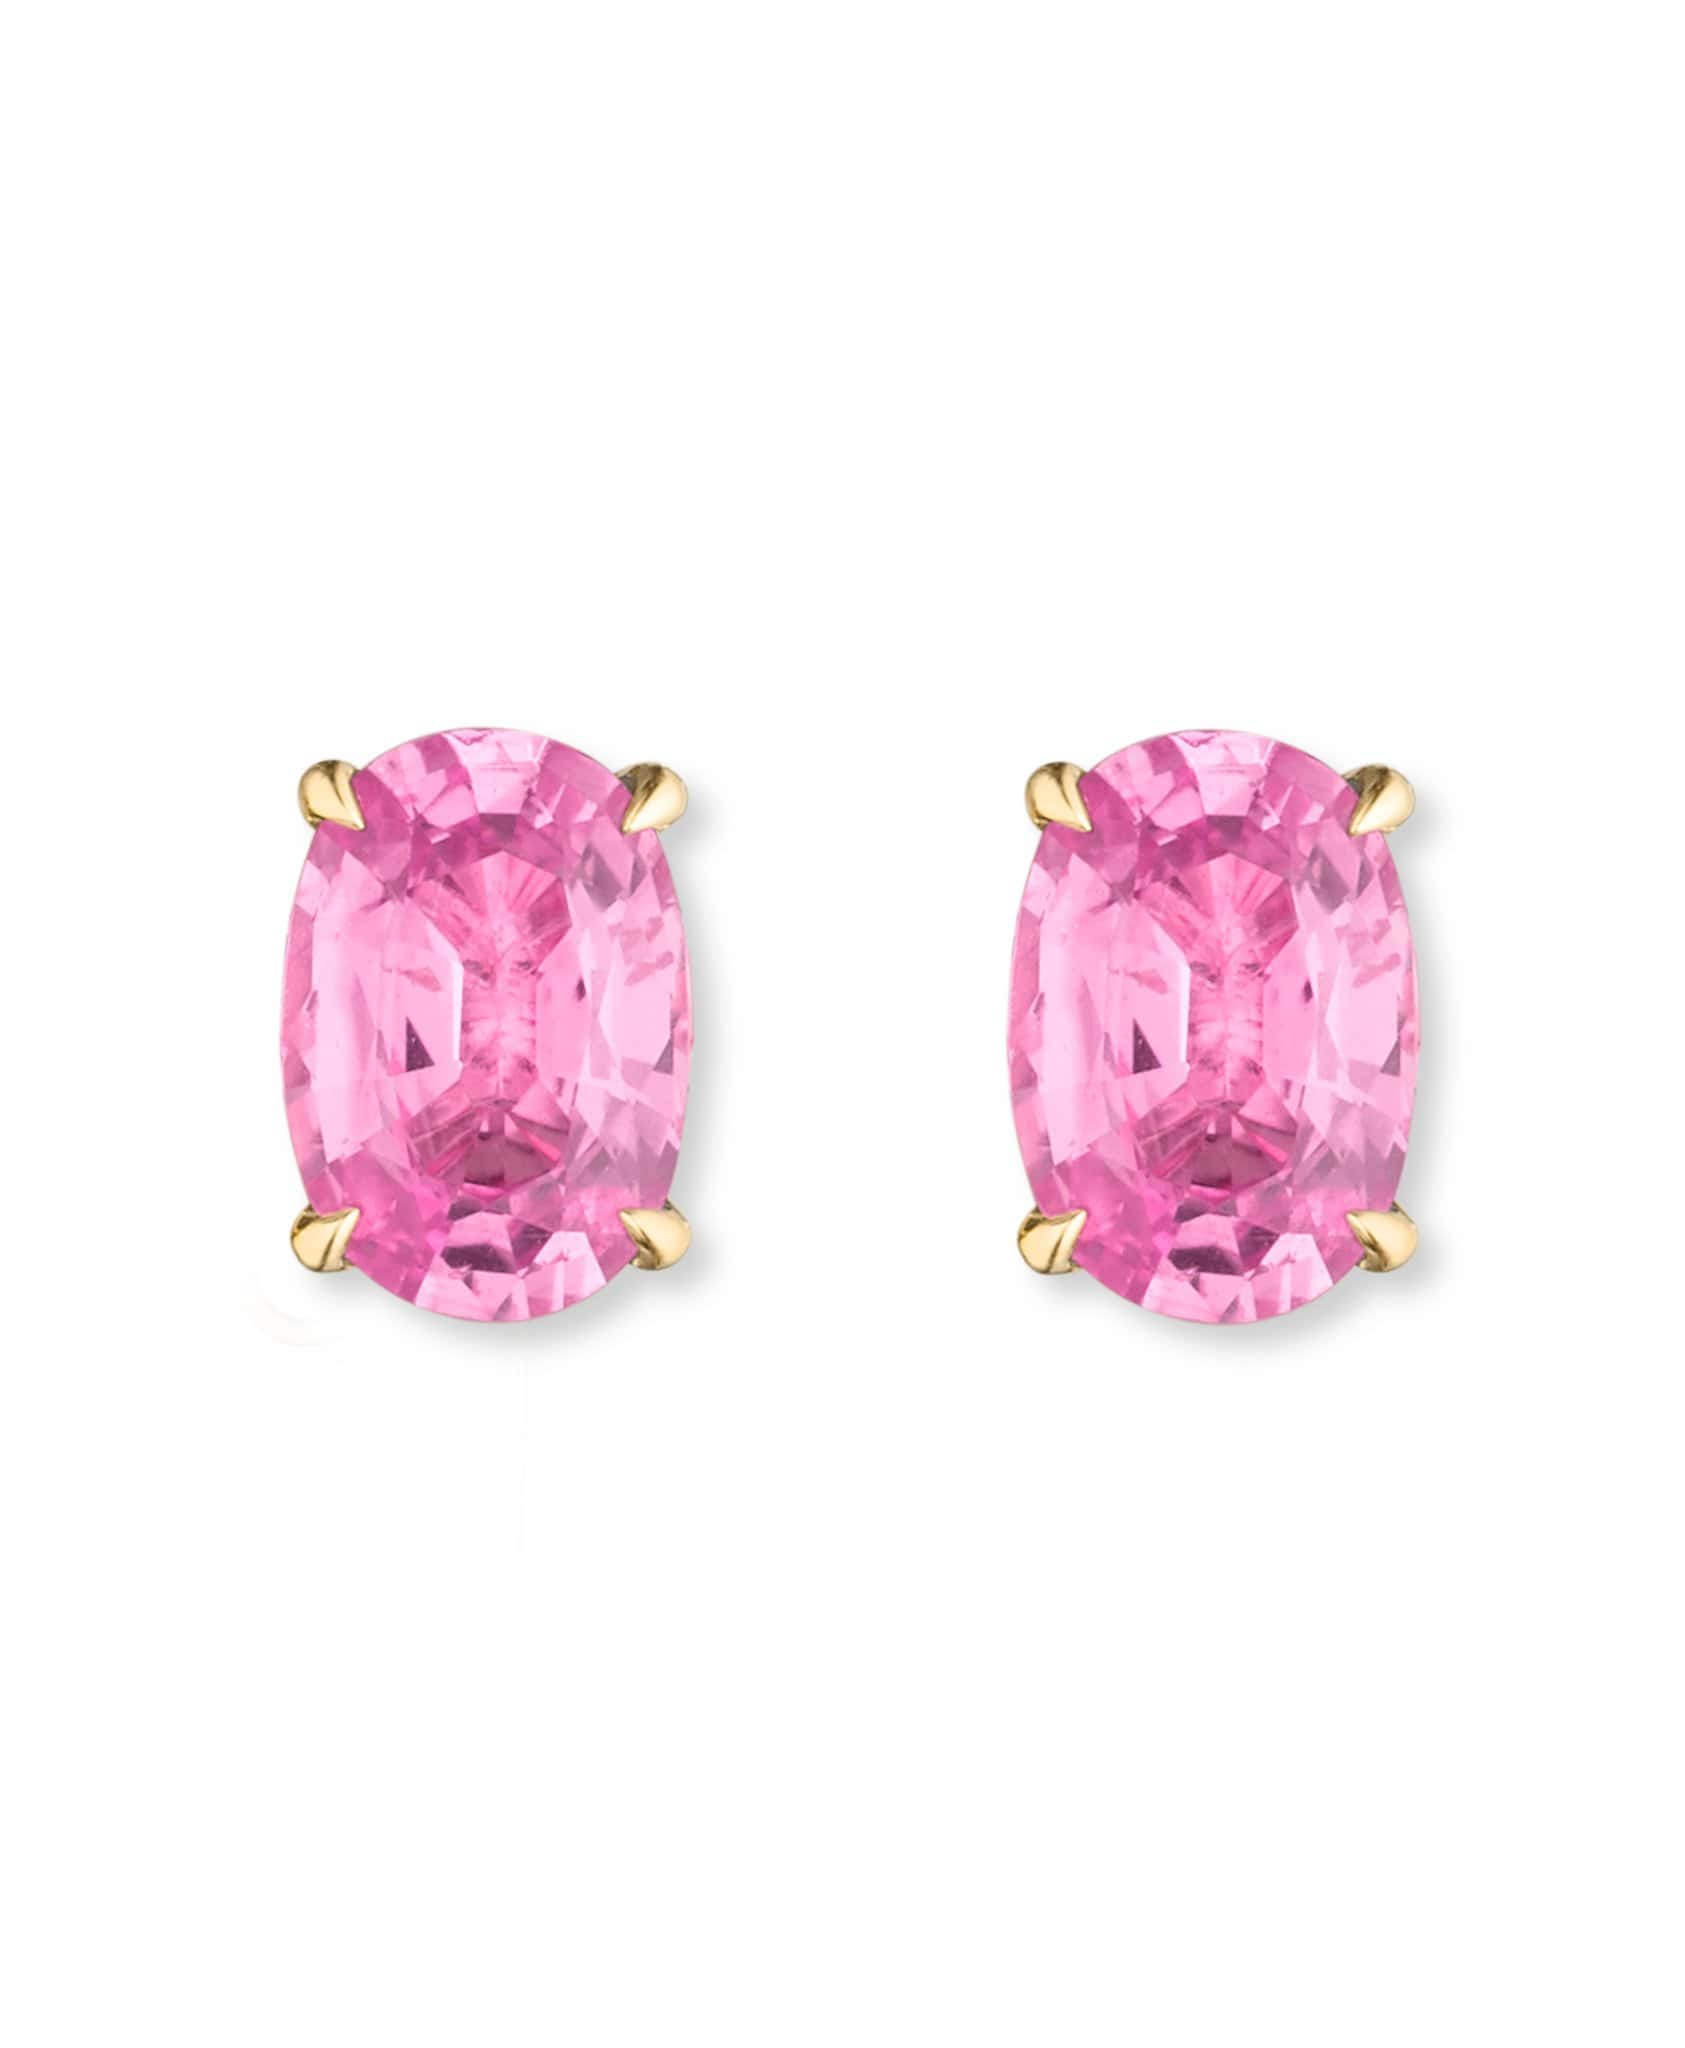 Tara Pink Tourmaline Studs: Discover Luxury Fine Jewelry | Nouvel Heritage || Yellow Gold